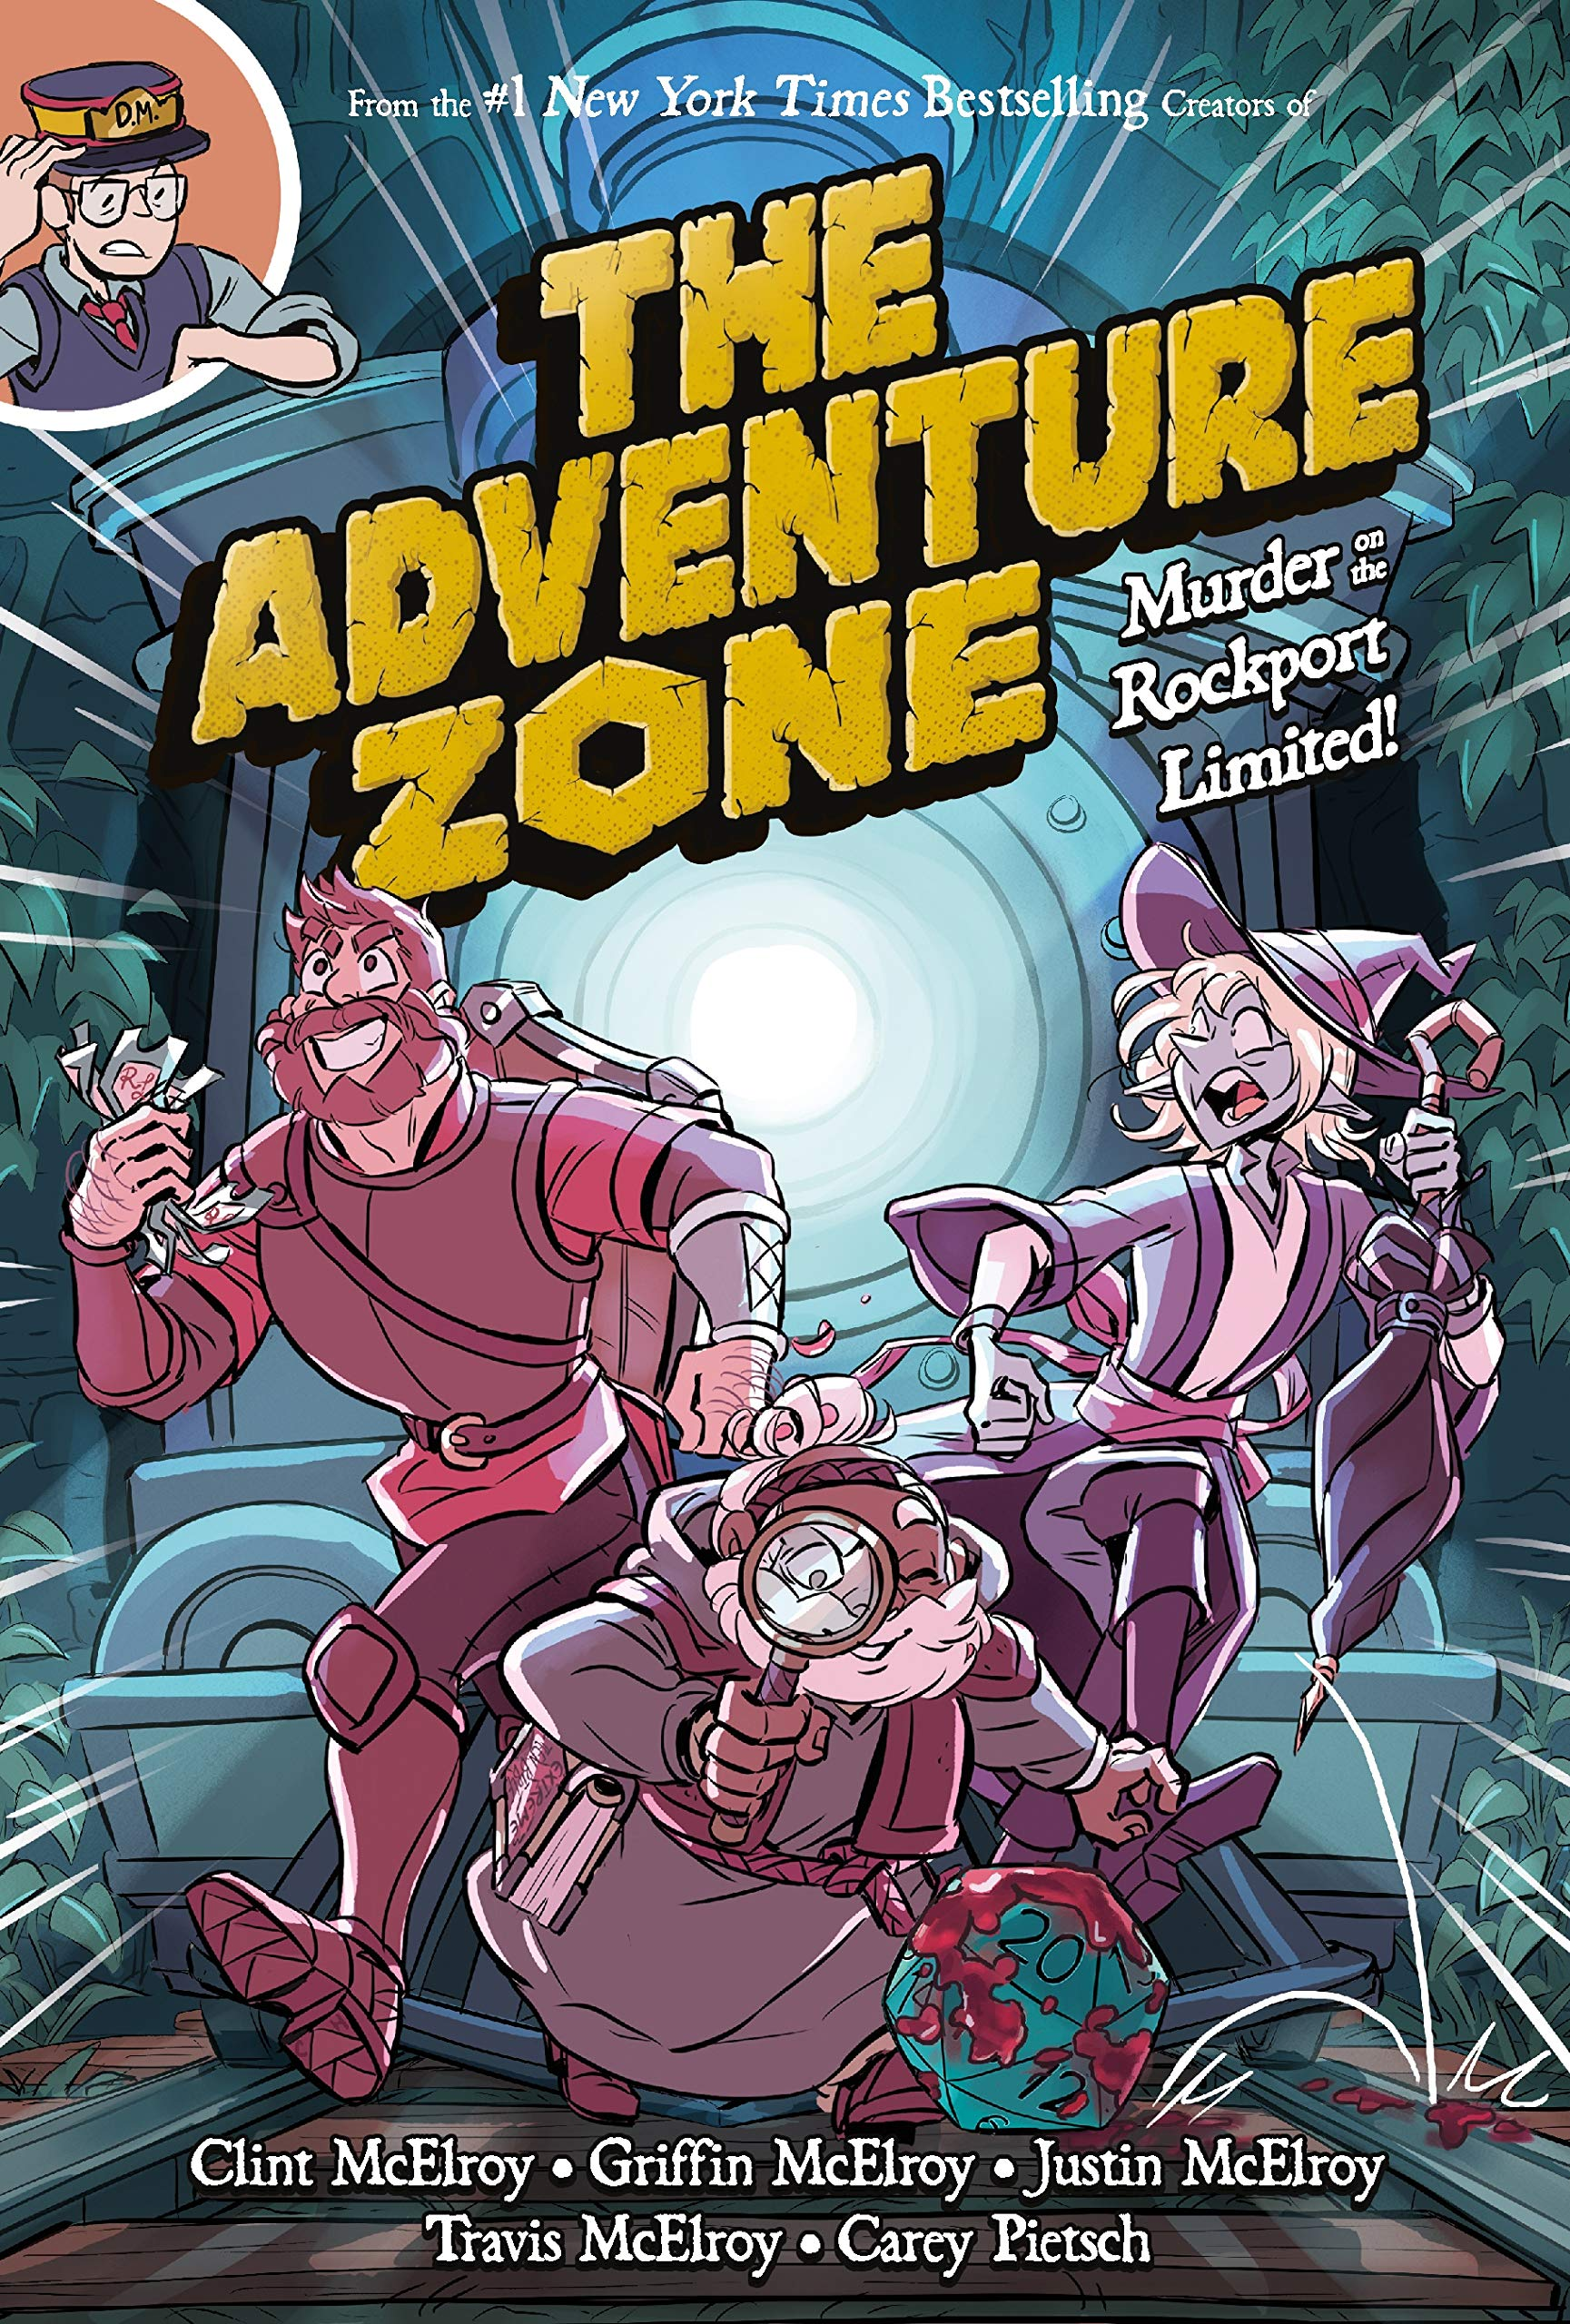 Adventure Zone Returns with Murder on the Rockport Limited!  Den of Geek